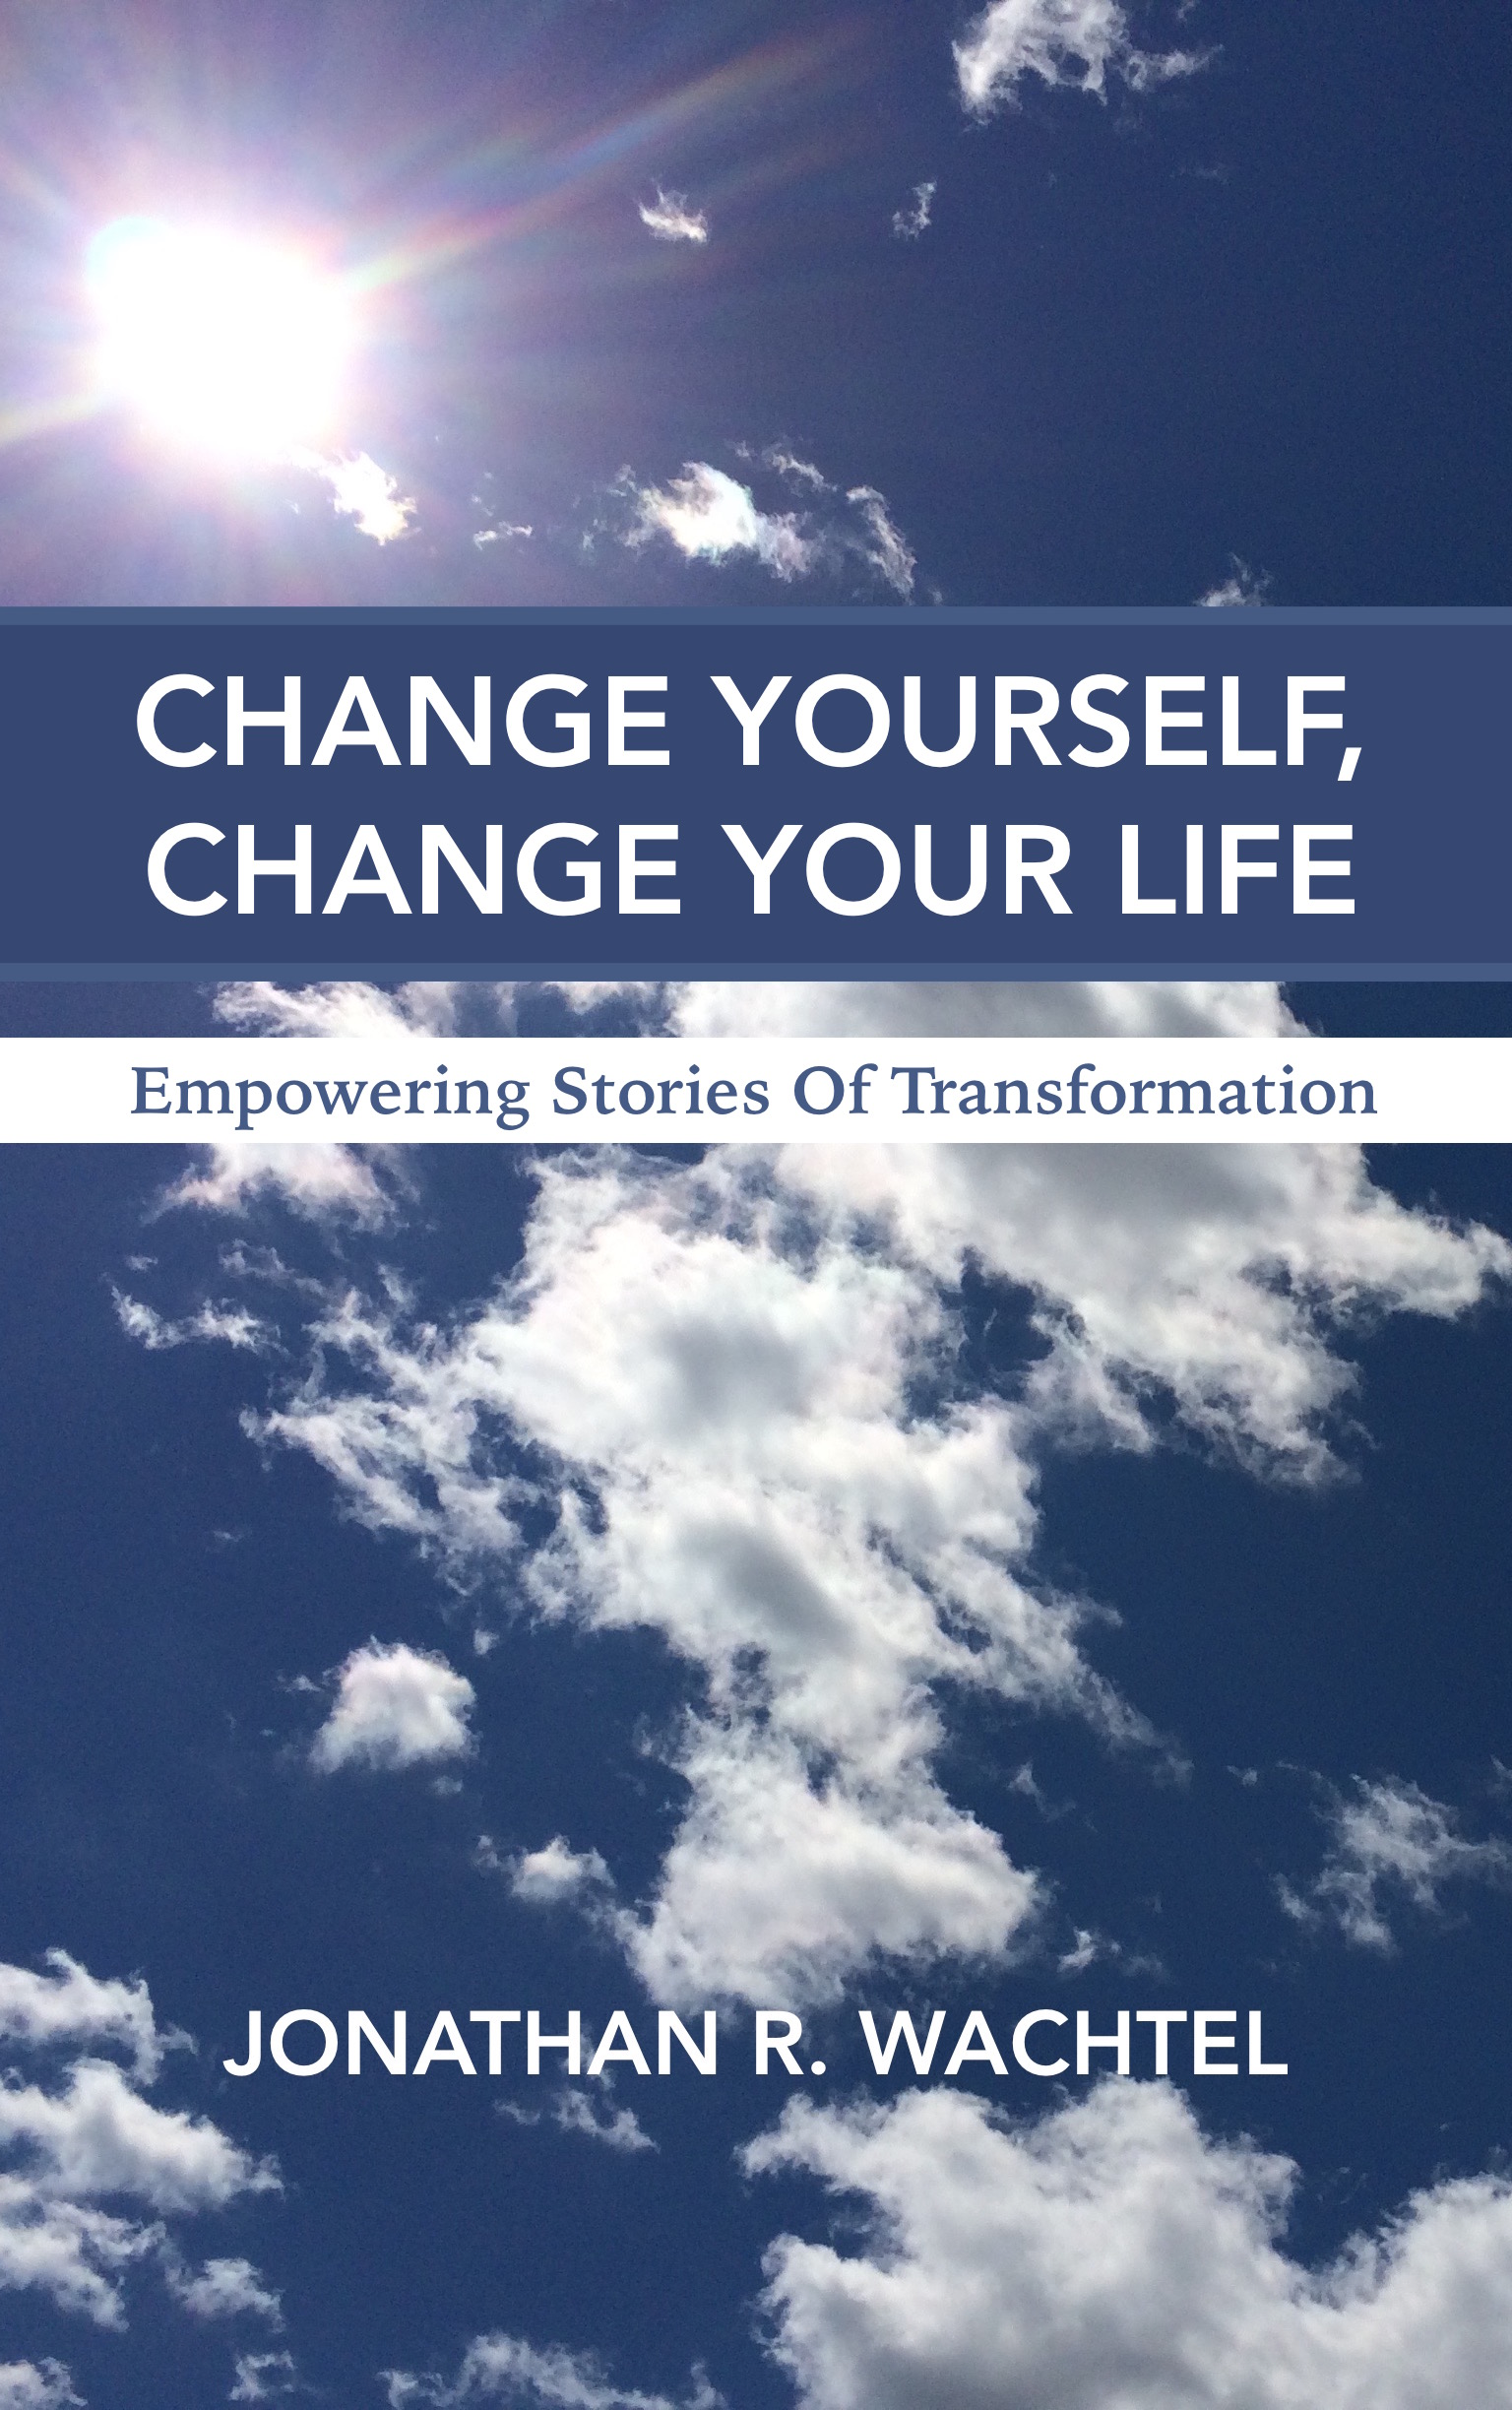 Change Yourself, Change Your Life:  Empowering Stories Of Transformation, ebook about results achieved through life coaching and life consulting, relationship coaching and relationship consulting, career coaching and career consulting, business coaching and business consulting, marketing coaching and marketing consulting, SEO specialization and SEO consulting, health coaching and health consulting, success coaching and success consulting, law of attraction coaching and law of attraction consulting, and more in South Windsor, CT, Hartford County, Connecticut, CT, Wapping, CT, Windsor, CT, East Windsor, CT, Windsor Locks, CT, Manchester, CT, Vernon, CT, West Hartford, CT, East Hartford, CT, Hartford, CT, Glastonbury, CT, Farmington, CT, Bloomfield, CT, Ellington, CT, Bolton, CT, Somers, CT, Enfield, CT, Suffield, CT, Tolland, CT, Willington, CT, Stafford, CT, Granby, CT, Addison, CT, Wethersfield, CT, Newington, CT, Simsbury, CT, Avon, CT, East Granby, CT, Canton, CT, Marlborough, CT, Rocky Hill, CT, Cromwell, CT, Andover, CT, Coventry, CT, New Britain, CT, Berlin, CT, Kensington, CT, East Hampton, CT, Portland, CT, Middletown, CT, Middlefield, CT, Hebron, CT, Columbia, CT, Mansfield, CT, Colchester, CT, Lebanon, CT, Windham, CT, Chaplin, CT, Hampton, CT, Ashford, CT, Eastford, CT, Union, CT, Hartland, CT, Barkhamsted, CT, Southington, CT, Bristol, CT, Meriden, CT, Cheshire, CT, Durham, CT, Wallingford, CT, Northford, CT, Hamden, CT, Bozrah, CT, Sprague, CT, Lisbon, CT, Salem, CT, East Haddam, CT, Chester, CT, Lyme, CT, Essex, CT, Montville, CT, Norwich, CT, Preston, CT, Ledyard, CT, New London, CT, Lisbon, CT, Plainfield, CT, Brooklyn, CT, Pomfret, CT, Woodstock, CT, Putnam, CT, Killingly, CT, Sterling, CT, North Stonington, CT, Stonington, CT, East Lyme, CT, Old Lyme, CT, Old Saybrook, CT, Madison, CT, Guilford, CT, North Branford, CT, Branford, CT, New Haven, CT, West Haven, CT, Wolcott, CT, Waterbury, CT, Naugatuck, CT, Middlebury, CT, Woodbury, CT, Watertown, CT, Thomaston, CT, Burlington, CT, Harwinton, CT, Torrington, CT,  New Hartford, CT, Winchester, CT, Colebrook, CT, Norfolk, CT, Goshen, CT, Litchfield, CT, Morris, CT, Bethlehem, CT, Southbury, CT, Cornwall, CT, Warren, CT, Canaan, CT, North Canaan, CT, Salisbury, CT, Sharon, CT, Kent, CT, Roxbury, CT, New Milford, CT, Brookfield, CT, Fairfield, CT, Newtown, CT, Monroe, CT, Shelton, CT, Milford, CT, Trumbull, CT, Bridgeport, CT, Bethel, CT, Redding, CT, Danbury, CT, New Fairfield, CT, Ridgefield, CT, Wilton, CT, Westport, CT, Norwalk, CT, New Canaan, CT, Darien, CT, Stamford, CT, Greenwich, CT, Agawam, MA, East Longmeadow, MA, Springfield, MA, Southwick, MA, Granville, MA, Tolland, MA, Westfield, MA, Chicopee, MA, Wilbraham, MA, Ludlow, MA, Monson, MA, Wales, MA, Holland, MA, Brimfield, MA, Palmer, MA, Ludlow, MA, Holyoke, MA, Russell, MA, Blandford, MA, formerly in Kew Gardens, Queens, New York City, New York, NY, near the Upper East Side of Manhattan, near Chelsea, NY, near Westchester, NY, near the Hamptons, on Long Island, NY, serving South Windsor, CT, Hartford County, Connecticut, CT, Wapping, CT, Windsor, CT, East Windsor, CT, Windsor Locks, CT, Manchester, CT, Vernon, CT, West Hartford, CT, East Hartford, CT, Hartford, CT, Glastonbury, CT, Farmington, CT, Bloomfield, CT, Ellington, CT, Bolton, CT, Somers, CT, Enfield, CT, Suffield, CT, Tolland, CT, Willington, CT, Stafford, CT, Granby, CT, Addison, CT, Wethersfield, CT, Newington, CT, Simsbury, CT, Avon, CT, East Granby, CT, Canton, CT, Marlborough, CT, Rocky Hill, CT, Cromwell, CT, Andover, CT, Coventry, CT, New Britain, CT, Berlin, CT, Kensington, CT, East Hampton, CT, Portland, CT, Middletown, CT, Middlefield, CT, Hebron, CT, Columbia, CT, Mansfield, CT, Colchester, CT, Lebanon, CT, Windham, CT, Chaplin, CT, Hampton, CT, Ashford, CT, Eastford, CT, Union, CT, Hartland, CT, Barkhamsted, CT, Southington, CT, Bristol, CT, Meriden, CT, Cheshire, CT, Durham, CT, Wallingford, CT, Northford, CT, Hamden, CT, Bozrah, CT, Sprague, CT, Lisbon, CT, Salem, CT, East Haddam, CT, Chester, CT, Lyme, CT, Essex, CT, Montville, CT, Norwich, CT, Preston, CT, Ledyard, CT, New London, CT, Lisbon, CT, Plainfield, CT, Brooklyn, CT, Pomfret, CT, Woodstock, CT, Putnam, CT, Killingly, CT, Sterling, CT, North Stonington, CT, Stonington, CT, East Lyme, CT, Old Lyme, CT, Old Saybrook, CT, Madison, CT, Guilford, CT, North Branford, CT, Branford, CT, New Haven, CT, West Haven, CT, Wolcott, CT, Waterbury, CT, Naugatuck, CT, Middlebury, CT, Woodbury, CT, Watertown, CT, Thomaston, CT, Burlington, CT, Harwinton, CT, Torrington, CT,  New Hartford, CT, Winchester, CT, Colebrook, CT, Norfolk, CT, Goshen, CT, Litchfield, CT, Morris, CT, Bethlehem, CT, Southbury, CT, Cornwall, CT, Warren, CT, Canaan, CT, North Canaan, CT, Salisbury, CT, Sharon, CT, Kent, CT, Roxbury, CT, New Milford, CT, Brookfield, CT, Fairfield, CT, Newtown, CT, Monroe, CT, Shelton, CT, Milford, CT, Trumbull, CT, Bridgeport, CT, Bethel, CT, Redding, CT, Danbury, CT, New Fairfield, CT, Ridgefield, CT, Wilton, CT, Westport, CT, Norwalk, CT, New Canaan, CT, Darien, CT, Stamford, CT, Greenwich, CT, Agawam, MA, East Longmeadow, MA, Springfield, MA, Southwick, MA, Granville, MA, Tolland, MA, Westfield, MA, Chicopee, MA, Wilbraham, MA, Ludlow, MA, Monson, MA, Wales, MA, Holland, MA, Brimfield, MA, Palmer, MA, Ludlow, MA, Holyoke, MA, Russell, MA, Blandford, MA, and also Kew Gardens, NY, Forest Hills, NY, Forest Hills Gardens, NY, Kew Garden Hills, NY, all of Queens, NY, Brooklyn, NY, Manhattan, NY, Nassau County, Long Island, NY, Suffolk County, Long Island, NY, Staten Island, the Bronx, all of New York State, Connecticut, Massachusetts, and surrounding areas, and over the phone and online all over the world, by South Windsor, Connecticut, Hartford County, Connecticut life coach and life consultant, relationship coach and relationship consultant, career coach and career consultant, business coach and business consultant, marketing coach and marketing consultant, SEO expert and SEO consultant, health coach and health consultant, success coach and success consultant, law of attraction coach and law of attraction consultant, international speaker and best-selling author and Kew Gardens, Queens, New York City, New York, NY life coach and life consultant, relationship coach and relationship consultant, career coach and career consultant, business coach and business consultant, marketing coach and marketing consultant, SEO expert and SEO consultant, health coach and health consultant, success coach and success consultant, law of attraction coach and law of attraction consultant, international speaker and best-selling author Jonathan R. Wachtel in South Windsor, CT, Hartford County, Connecticut, CT, Wapping, CT, Windsor, CT, East Windsor, CT, Windsor Locks, CT, Manchester, CT, Vernon, CT, West Hartford, CT, East Hartford, CT, Hartford, CT, Glastonbury, CT, Farmington, CT, Bloomfield, CT, Ellington, CT, Bolton, CT, Somers, CT, Enfield, CT, Suffield, CT, Tolland, CT, Willington, CT, Stafford, CT, Granby, CT, Addison, CT, Wethersfield, CT, Newington, CT, Simsbury, CT, Avon, CT, East Granby, CT, Canton, CT, Marlborough, CT, Rocky Hill, CT, Cromwell, CT, Andover, CT, Coventry, CT, New Britain, CT, Berlin, CT, Kensington, CT, East Hampton, CT, Portland, CT, Middletown, CT, Middlefield, CT, Hebron, CT, Columbia, CT, Mansfield, CT, Colchester, CT, Lebanon, CT, Windham, CT, Chaplin, CT, Hampton, CT, Ashford, CT, Eastford, CT, Union, CT, Hartland, CT, Barkhamsted, CT, Southington, CT, Bristol, CT, Meriden, CT, Cheshire, CT, Durham, CT, Wallingford, CT, Northford, CT, Hamden, CT, Bozrah, CT, Sprague, CT, Lisbon, CT, Salem, CT, East Haddam, CT, Chester, CT, Lyme, CT, Essex, CT, Montville, CT, Norwich, CT, Preston, CT, Ledyard, CT, New London, CT, Lisbon, CT, Plainfield, CT, Brooklyn, CT, Pomfret, CT, Woodstock, CT, Putnam, CT, Killingly, CT, Sterling, CT, North Stonington, CT, Stonington, CT, East Lyme, CT, Old Lyme, CT, Old Saybrook, CT, Madison, CT, Guilford, CT, North Branford, CT, Branford, CT, New Haven, CT, West Haven, CT, Wolcott, CT, Waterbury, CT, Naugatuck, CT, Middlebury, CT, Woodbury, CT, Watertown, CT, Thomaston, CT, Burlington, CT, Harwinton, CT, Torrington, CT,  New Hartford, CT, Winchester, CT, Colebrook, CT, Norfolk, CT, Goshen, CT, Litchfield, CT, Morris, CT, Bethlehem, CT, Southbury, CT, Cornwall, CT, Warren, CT, Canaan, CT, North Canaan, CT, Salisbury, CT, Sharon, CT, Kent, CT, Roxbury, CT, New Milford, CT, Brookfield, CT, Fairfield, CT, Newtown, CT, Monroe, CT, Shelton, CT, Milford, CT, Trumbull, CT, Bridgeport, CT, Bethel, CT, Redding, CT, Danbury, CT, New Fairfield, CT, Ridgefield, CT, Wilton, CT, Westport, CT, Norwalk, CT, New Canaan, CT, Darien, CT, Stamford, CT, Greenwich, CT, Agawam, MA, East Longmeadow, MA, Springfield, MA, Southwick, MA, Granville, MA, Tolland, MA, Westfield, MA, Chicopee, MA, Wilbraham, MA, Ludlow, MA, Monson, MA, Wales, MA, Holland, MA, Brimfield, MA, Palmer, MA, Ludlow, MA, Holyoke, MA, Russell, MA, Blandford, MA, formerly in Kew Gardens, Queens, New York City, New York, NY, near the Upper East Side of Manhattan, near Chelsea, NY, near Westchester, NY, near the Hamptons, on Long Island, NY serving South Windsor, CT, Hartford County, Connecticut, CT, Wapping, CT, Windsor, CT, East Windsor, CT, Windsor Locks, CT, Manchester, CT, Vernon, CT, West Hartford, CT, East Hartford, CT, Hartford, CT, Glastonbury, CT, Farmington, CT, Bloomfield, CT, Ellington, CT, Bolton, CT, Somers, CT, Enfield, CT, Suffield, CT, Tolland, CT, Willington, CT, Stafford, CT, Granby, CT, Addison, CT, Wethersfield, CT, Newington, CT, Simsbury, CT, Avon, CT, East Granby, CT, Canton, CT, Marlborough, CT, Rocky Hill, CT, Cromwell, CT, Andover, CT, Coventry, CT, New Britain, CT, Berlin, CT, Kensington, CT, East Hampton, CT, Portland, CT, Middletown, CT, Middlefield, CT, Hebron, CT, Columbia, CT, Mansfield, CT, Colchester, CT, Lebanon, CT, Windham, CT, Chaplin, CT, Hampton, CT, Ashford, CT, Eastford, CT, Union, CT, Hartland, CT, Barkhamsted, CT, Southington, CT, Bristol, CT, Meriden, CT, Cheshire, CT, Durham, CT, Wallingford, CT, Northford, CT, Hamden, CT, Bozrah, CT, Sprague, CT, Lisbon, CT, Salem, CT, East Haddam, CT, Chester, CT, Lyme, CT, Essex, CT, Montville, CT, Norwich, CT, Preston, CT, Ledyard, CT, New London, CT, Lisbon, CT, Plainfield, CT, Brooklyn, CT, Pomfret, CT, Woodstock, CT, Putnam, CT, Killingly, CT, Sterling, CT, North Stonington, CT, Stonington, CT, East Lyme, CT, Old Lyme, CT, Old Saybrook, CT, Madison, CT, Guilford, CT, North Branford, CT, Branford, CT, New Haven, CT, West Haven, CT, Wolcott, CT, Waterbury, CT, Naugatuck, CT, Middlebury, CT, Woodbury, CT, Watertown, CT, Thomaston, CT, Burlington, CT, Harwinton, CT, Torrington, CT,  New Hartford, CT, Winchester, CT, Colebrook, CT, Norfolk, CT, Goshen, CT, Litchfield, CT, Morris, CT, Bethlehem, CT, Southbury, CT, Cornwall, CT, Warren, CT, Canaan, CT, North Canaan, CT, Salisbury, CT, Sharon, CT, Kent, CT, Roxbury, CT, New Milford, CT, Brookfield, CT, Fairfield, CT, Newtown, CT, Monroe, CT, Shelton, CT, Milford, CT, Trumbull, CT, Bridgeport, CT, Bethel, CT, Redding, CT, Danbury, CT, New Fairfield, CT, Ridgefield, CT, Wilton, CT, Westport, CT, Norwalk, CT, New Canaan, CT, Darien, CT, Stamford, CT, Greenwich, CT, Agawam, MA, East Longmeadow, MA, Springfield, MA, Southwick, MA, Granville, MA, Tolland, MA, Westfield, MA, Chicopee, MA, Wilbraham, MA, Ludlow, MA, Monson, MA, Wales, MA, Holland, MA, Brimfield, MA, Palmer, MA, Ludlow, MA, Holyoke, MA, Russell, MA, Blandford, MA, as well as Kew Gardens, NY, Forest Hills, NY, Forest Hills Gardens, NY, Kew Garden Hills, NY, all of Queens, NY, Brooklyn, NY, Manhattan, NY, Nassau County, Long Island, NY, Suffolk County, Long Island, NY, Staten Island, the Bronx, all of New York State, Connecticut, Massachusetts, and surrounding areas, and everywhere over the phone and online. Seeking a psychologist, therapist, counselor, or coach in South Windsor, CT, Hartford County, Connecticut, CT, Wapping, CT, near Windsor, CT, East Windsor, CT, Windsor Locks, CT, Manchester, CT, Vernon, CT, West Hartford, CT, East Hartford, CT, Hartford, CT, Glastonbury, CT, Farmington, CT, Bloomfield, CT, Ellington, CT, Bolton, CT, Somers, CT, Enfield, CT, Suffield, CT, Tolland, CT, Willington, CT, Stafford, CT, Granby, CT, Addison, CT, Wethersfield, CT, Newington, CT, Simsbury, CT, Avon, CT, East Granby, CT, Canton, CT, Marlborough, CT, Rocky Hill, CT, Cromwell, CT, Andover, CT, Coventry, CT, New Britain, CT, Berlin, CT, Kensington, CT, East Hampton, CT, Portland, CT, Middletown, CT, Middlefield, CT, Hebron, CT, Columbia, CT, Mansfield, CT, Colchester, CT, Lebanon, CT, Windham, CT, Chaplin, CT, Hampton, CT, Ashford, CT, Eastford, CT, Union, CT, Hartland, CT, Barkhamsted, CT, Southington, CT, Bristol, CT, Meriden, CT, Cheshire, CT, Durham, CT, Wallingford, CT, Northford, CT, Hamden, CT, Bozrah, CT, Sprague, CT, Lisbon, CT, Salem, CT, East Haddam, CT, Chester, CT, Lyme, CT, Essex, CT, Montville, CT, Norwich, CT, Preston, CT, Ledyard, CT, New London, CT, Lisbon, CT, Plainfield, CT, Brooklyn, CT, Pomfret, CT, Woodstock, CT, Putnam, CT, Killingly, CT, Sterling, CT, North Stonington, CT, Stonington, CT, East Lyme, CT, Old Lyme, CT, Old Saybrook, CT, Madison, CT, Guilford, CT, North Branford, CT, Branford, CT, New Haven, CT, West Haven, CT, Wolcott, CT, Waterbury, CT, Naugatuck, CT, Middlebury, CT, Woodbury, CT, Watertown, CT, Thomaston, CT, Burlington, CT, Harwinton, CT, Torrington, CT,  New Hartford, CT, Winchester, CT, Colebrook, CT, Norfolk, CT, Goshen, CT, Litchfield, CT, Morris, CT, Bethlehem, CT, Southbury, CT, Cornwall, CT, Warren, CT, Canaan, CT, North Canaan, CT, Salisbury, CT, Sharon, CT, Kent, CT, Roxbury, CT, New Milford, CT, Brookfield, CT, Fairfield, CT, Newtown, CT, Monroe, CT, Shelton, CT, Milford, CT, Trumbull, CT, Bridgeport, CT, Bethel, CT, Redding, CT, Danbury, CT, New Fairfield, CT, Ridgefield, CT, Wilton, CT, Westport, CT, Norwalk, CT, New Canaan, CT, Darien, CT, Stamford, CT, Greenwich, CT, Agawam, MA, East Longmeadow, MA, Springfield, MA, Southwick, MA, Granville, MA, Tolland, MA, Westfield, MA, Chicopee, MA, Wilbraham, MA, Ludlow, MA, Monson, MA, Wales, MA, Holland, MA, Brimfield, MA, Palmer, MA, Ludlow, MA, Holyoke, MA, Russell, MA, Blandford, MA, formerly in Kew Gardens, NY, near Forest Hills, NY, Forest Hills Gardens, NY, Kew Garden Hills, NY, Queens, NY, Brooklyn, NY, Manhattan, NY, Nassau County, Long Island, NY, Suffolk County, Long Island, NY, Staten Island, the Bronx, New York City, New York State, Connecticut, Massachusetts, or surrounding areas? If you're seeking therapy, counseling, or coaching in South Windsor, CT, Hartford County, Connecticut, CT, Wapping, CT, Windsor, CT, East Windsor, CT, Windsor Locks, CT, Manchester, CT, Vernon, CT, West Hartford, CT, East Hartford, CT, Hartford, CT, Glastonbury, CT, Farmington, CT, Bloomfield, CT, Ellington, CT, Bolton, CT, Somers, CT, Enfield, CT, Suffield, CT, Tolland, CT, Willington, CT, Stafford, CT, Granby, CT, Addison, CT, Wethersfield, CT, Newington, CT, Simsbury, CT, Avon, CT, East Granby, CT, Canton, CT, Marlborough, CT, Rocky Hill, CT, Cromwell, CT, Andover, CT, Coventry, CT, New Britain, CT, Berlin, CT, Kensington, CT, East Hampton, CT, Portland, CT, Middletown, CT, Middlefield, CT, Hebron, CT, Columbia, CT, Mansfield, CT, Colchester, CT, Lebanon, CT, Windham, CT, Chaplin, CT, Hampton, CT, Ashford, CT, Eastford, CT, Union, CT, Hartland, CT, Barkhamsted, CT, Southington, CT, Bristol, CT, Meriden, CT, Cheshire, CT, Durham, CT, Wallingford, CT, Northford, CT, Hamden, CT, Bozrah, CT, Sprague, CT, Lisbon, CT, Salem, CT, East Haddam, CT, Chester, CT, Lyme, CT, Essex, CT, Montville, CT, Norwich, CT, Preston, CT, Ledyard, CT, New London, CT, Lisbon, CT, Plainfield, CT, Brooklyn, CT, Pomfret, CT, Woodstock, CT, Putnam, CT, Killingly, CT, Sterling, CT, North Stonington, CT, Stonington, CT, East Lyme, CT, Old Lyme, CT, Old Saybrook, CT, Madison, CT, Guilford, CT, North Branford, CT, Branford, CT, New Haven, CT, West Haven, CT, Wolcott, CT, Waterbury, CT, Naugatuck, CT, Middlebury, CT, Woodbury, CT, Watertown, CT, Thomaston, CT, Burlington, CT, Harwinton, CT, Torrington, CT,  New Hartford, CT, Winchester, CT, Colebrook, CT, Norfolk, CT, Goshen, CT, Litchfield, CT, Morris, CT, Bethlehem, CT, Southbury, CT, Cornwall, CT, Warren, CT, Canaan, CT, North Canaan, CT, Salisbury, CT, Sharon, CT, Kent, CT, Roxbury, CT, New Milford, CT, Brookfield, CT, Fairfield, CT, Newtown, CT, Monroe, CT, Shelton, CT, Milford, CT, Trumbull, CT, Bridgeport, CT, Bethel, CT, Redding, CT, Danbury, CT, New Fairfield, CT, Ridgefield, CT, Wilton, CT, Westport, CT, Norwalk, CT, New Canaan, CT, Darien, CT, Stamford, CT, Greenwich, CT, Agawam, MA, East Longmeadow, MA, Springfield, MA, Southwick, MA, Granville, MA, Tolland, MA, Westfield, MA, Chicopee, MA, Wilbraham, MA, Ludlow, MA, Monson, MA, Wales, MA, Holland, MA, Brimfield, MA, Palmer, MA, Ludlow, MA, Holyoke, MA, Russell, MA, Blandford, MA, formerly in Kew Gardens, NY, near Forest Hills, NY, Forest Hills Gardens, NY, Kew Garden Hills, NY, Queens, NY, Brooklyn, NY, Manhattan, NY, Nassau County, Long Island, NY, Suffolk County, Long Island, NY, Staten Island, the Bronx, New York City, New York State, Connecticut, Massachusetts, or anywhere, contact South Windsor, Hartford County, Connecticut Life Coach and New York Life Coach Jonathan.